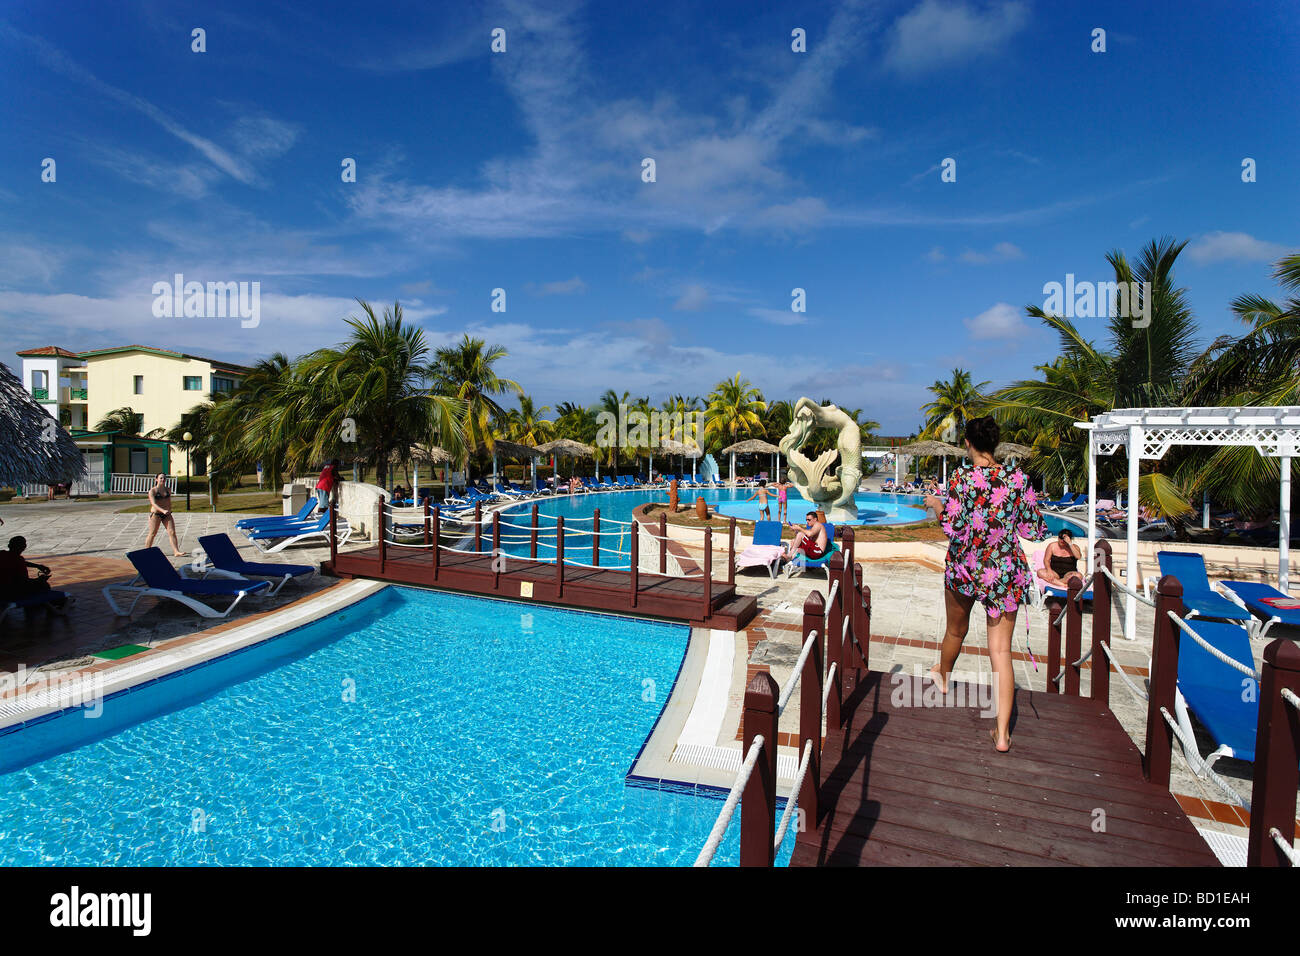 Stock photo swimming pool hotel nh krystal laguna villas and resort cayo coco ciego de avila cuba west indies